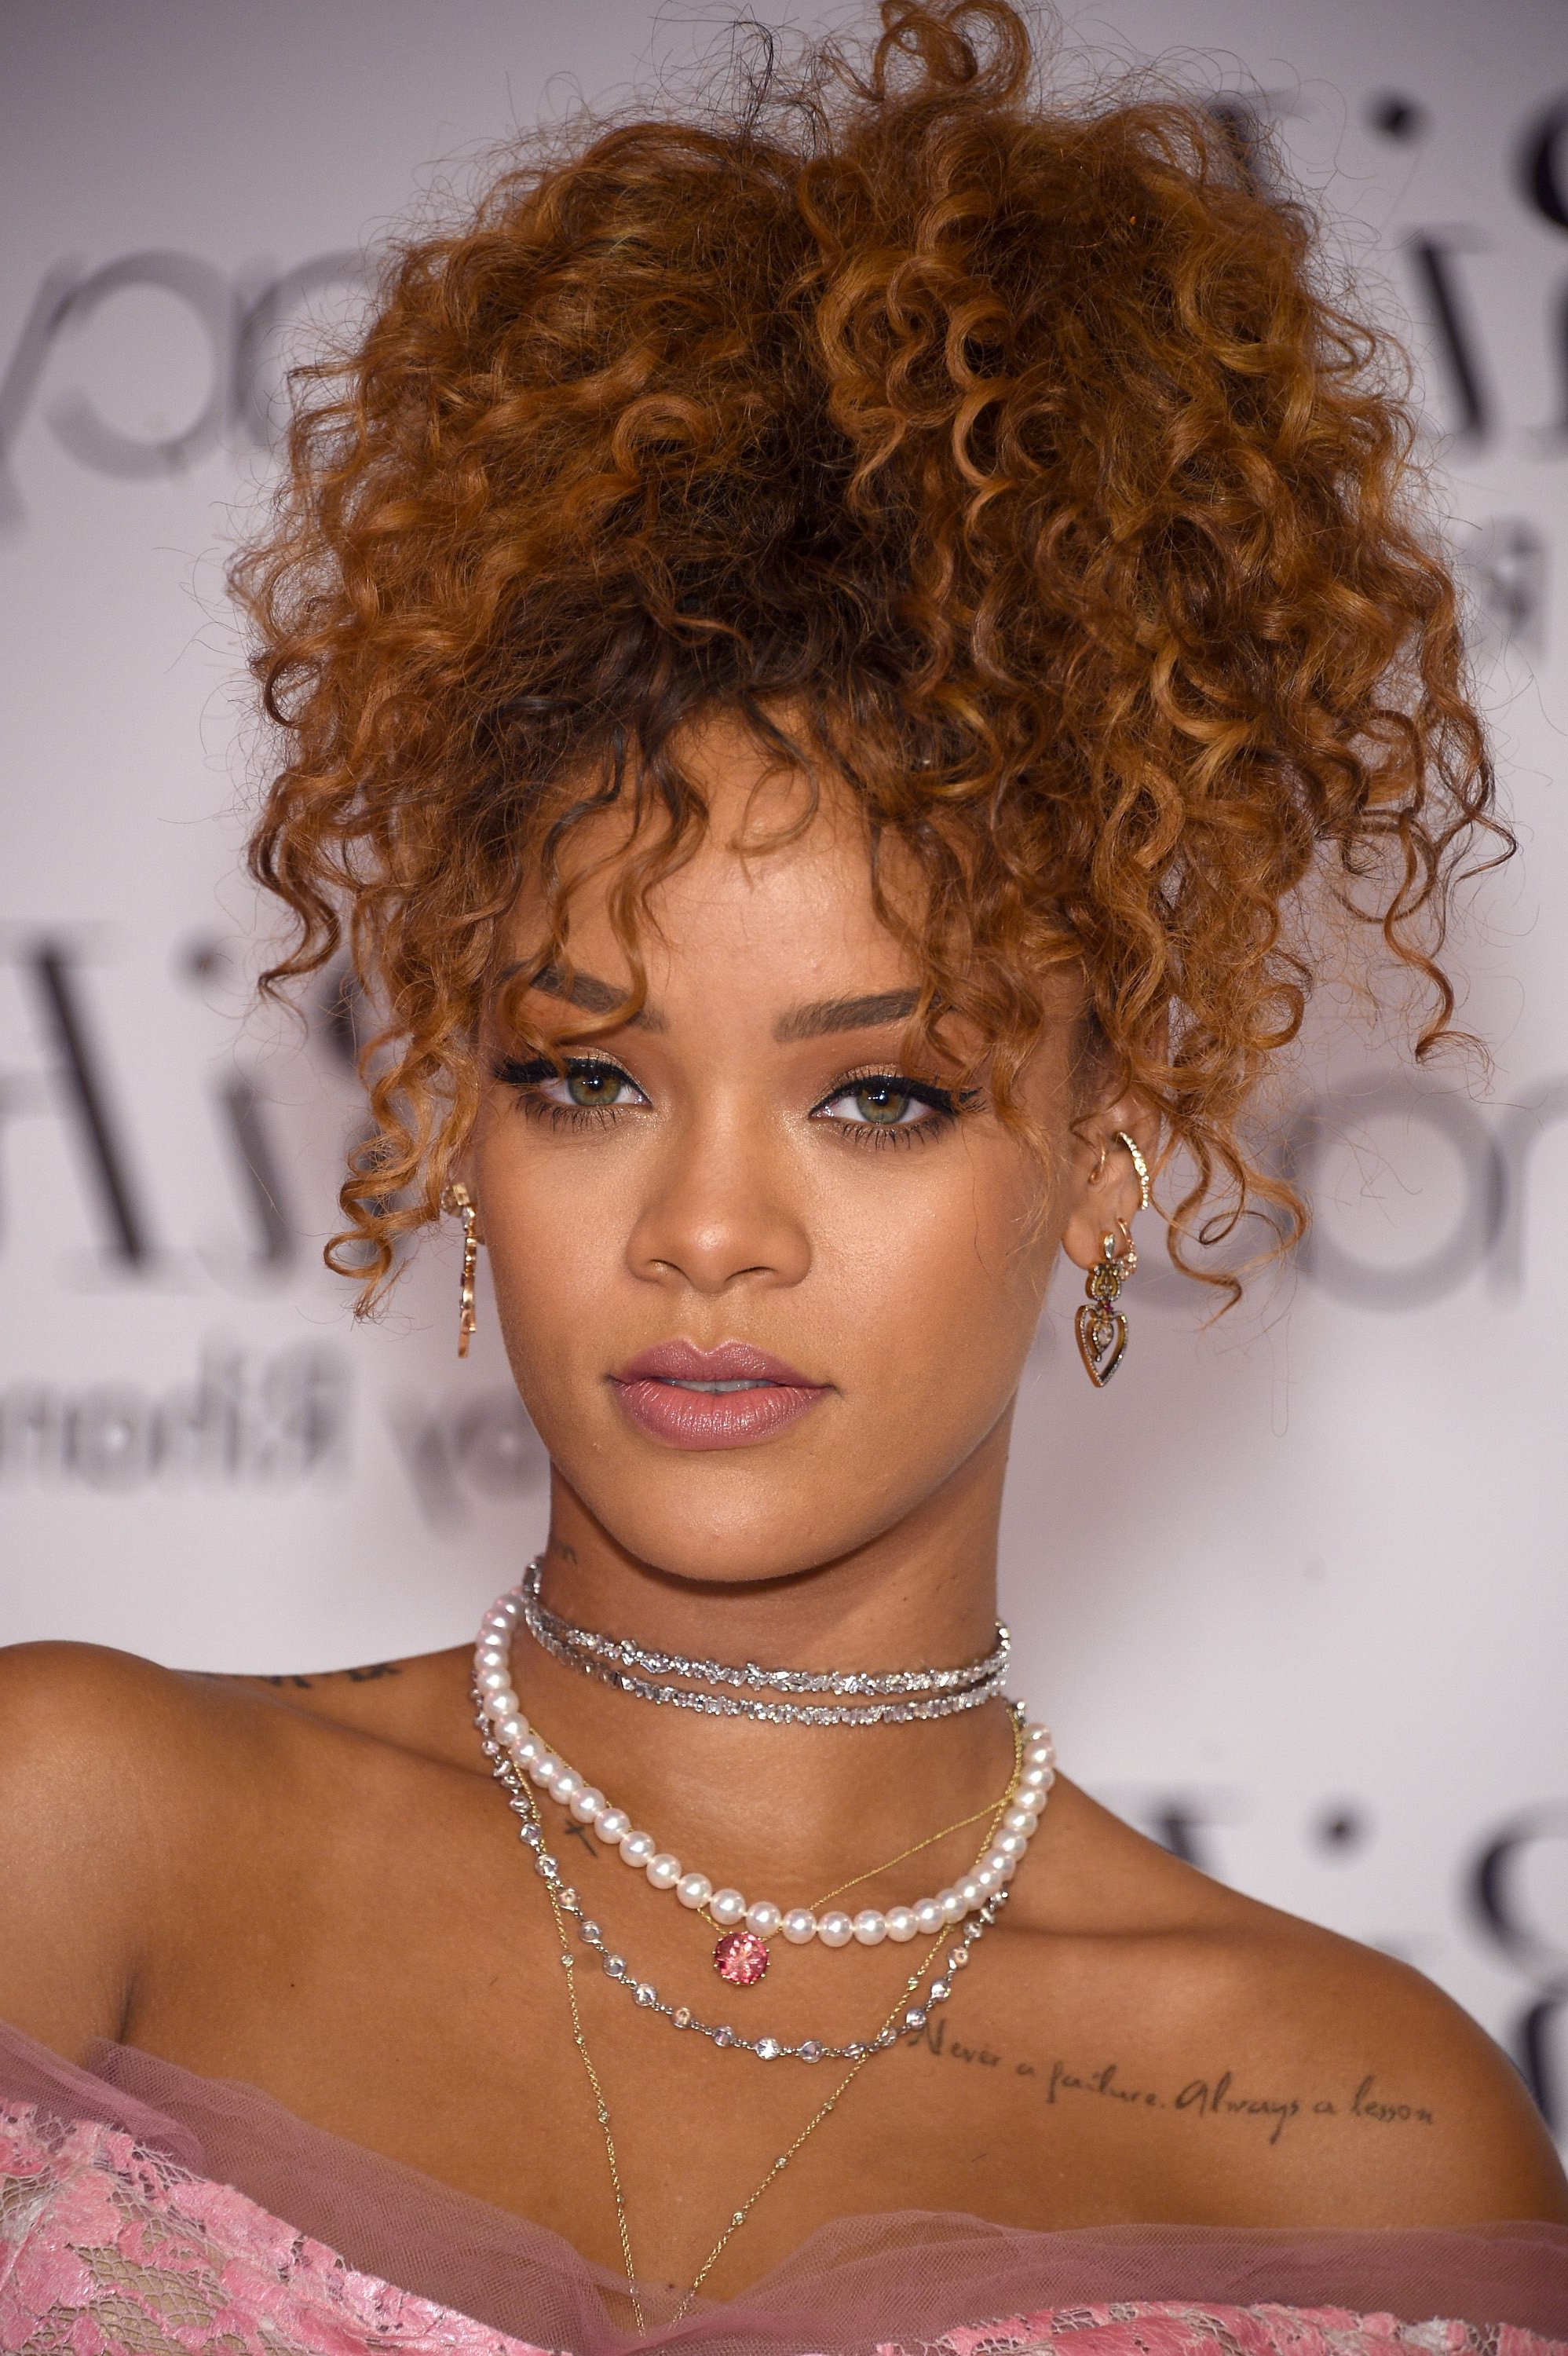 Curly Hairstyles 2019 – 40+ Styles For Every Type Of Curl In Well Liked Medium Hairstyles For Very Curly Hair (View 10 of 20)